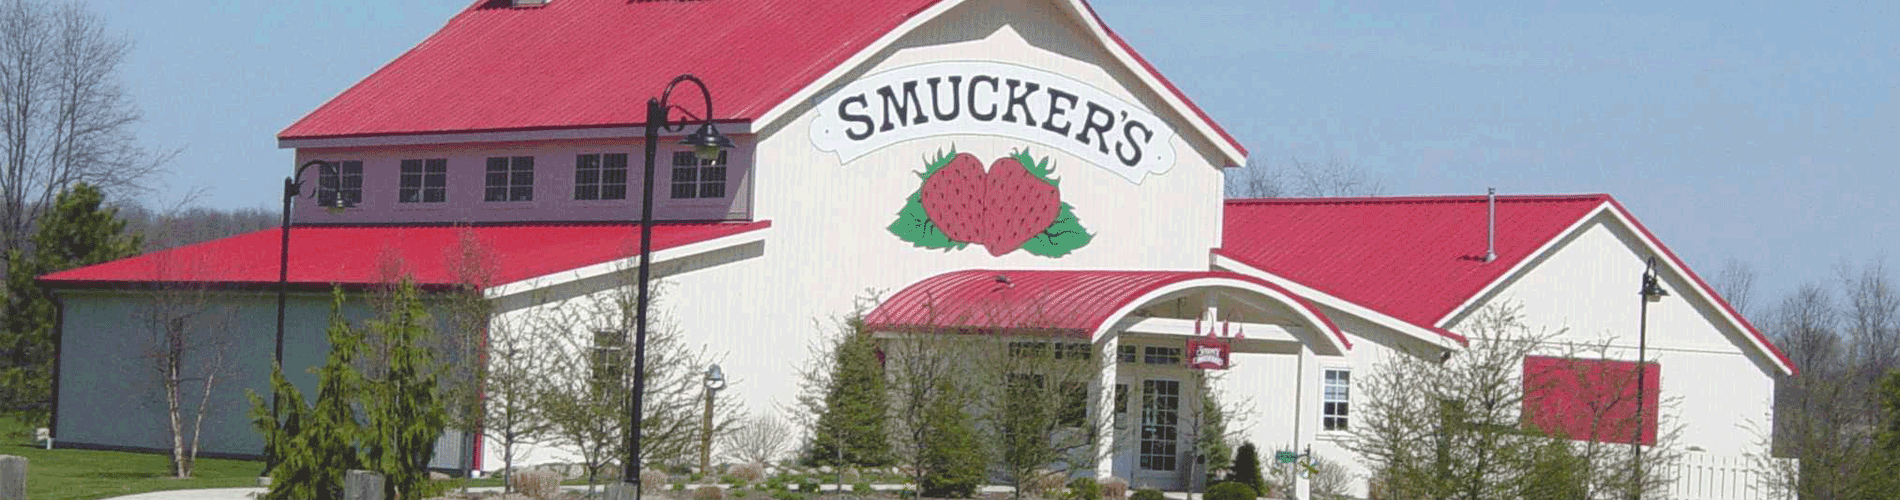 Wayne County - JM Smuckers Company Store and Cafe, Orrville, Ohio